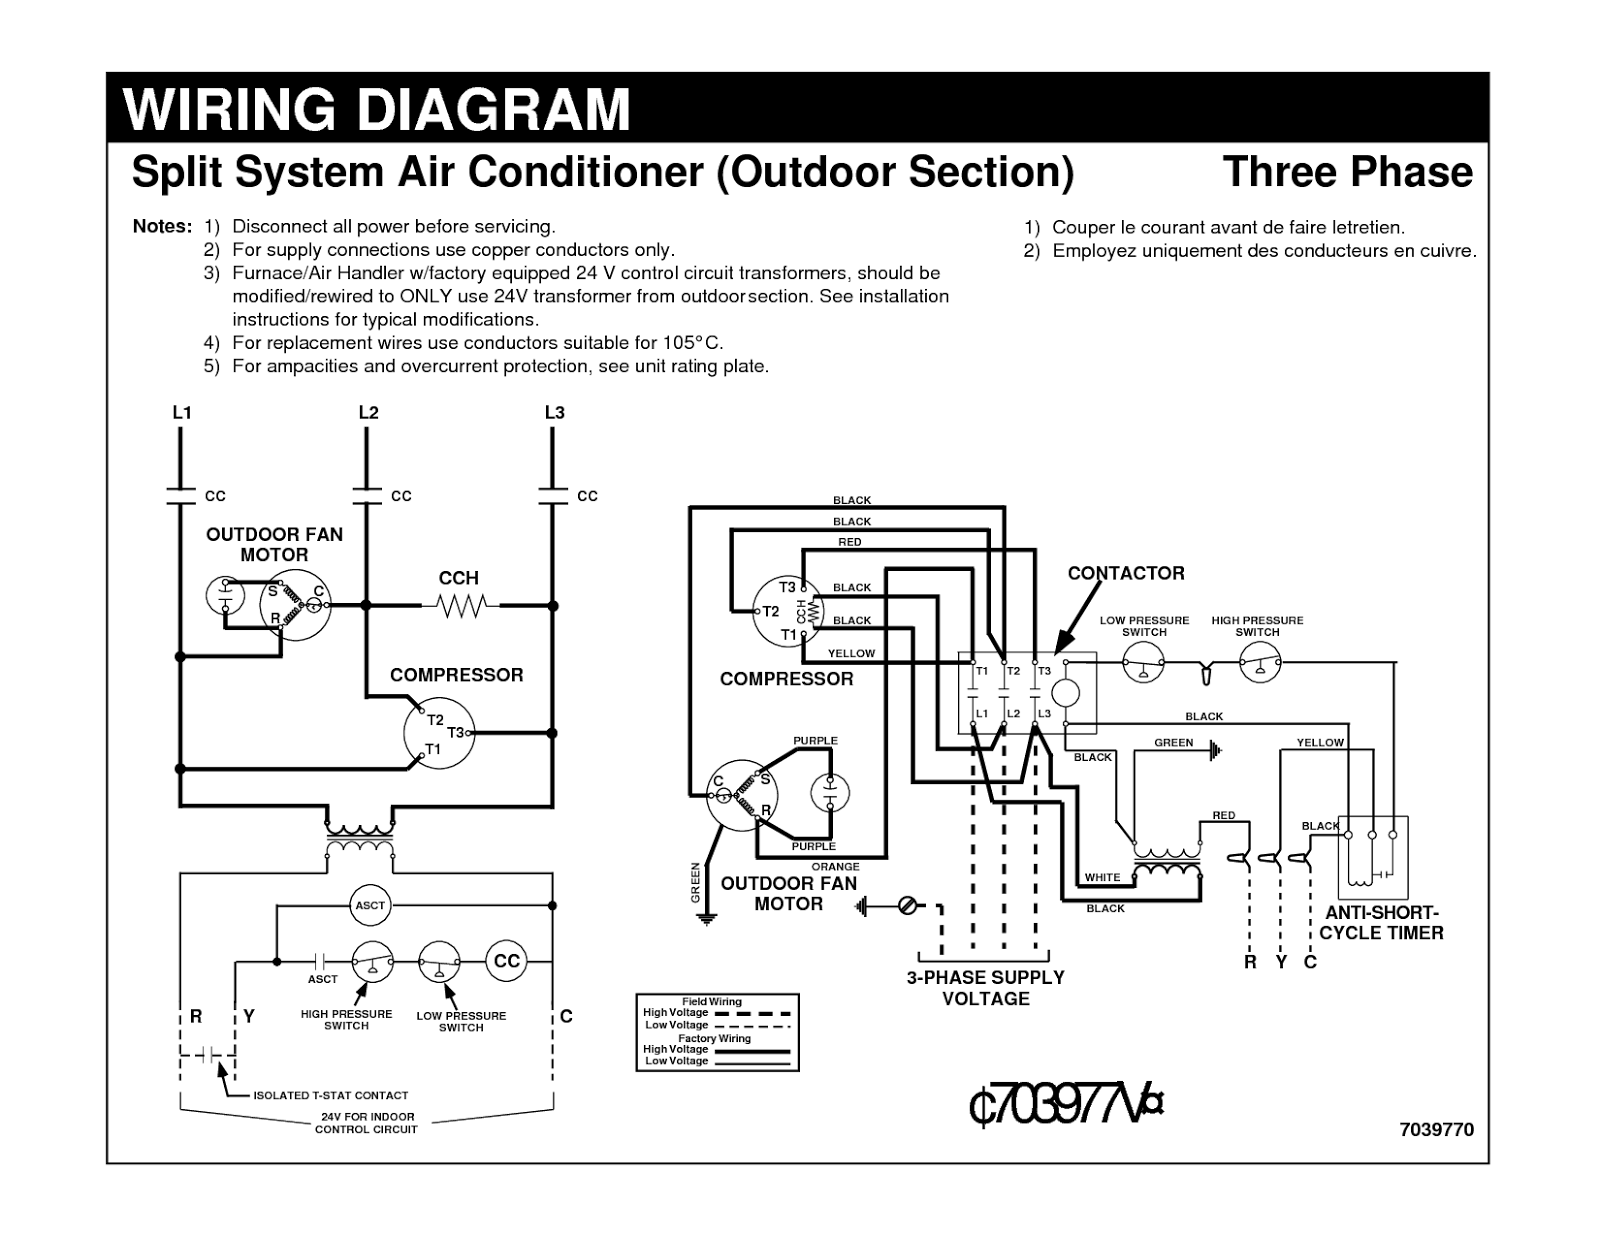 Wiring Diagram Manual Wdm : Electrical wiring diagrams for air conditioning systems